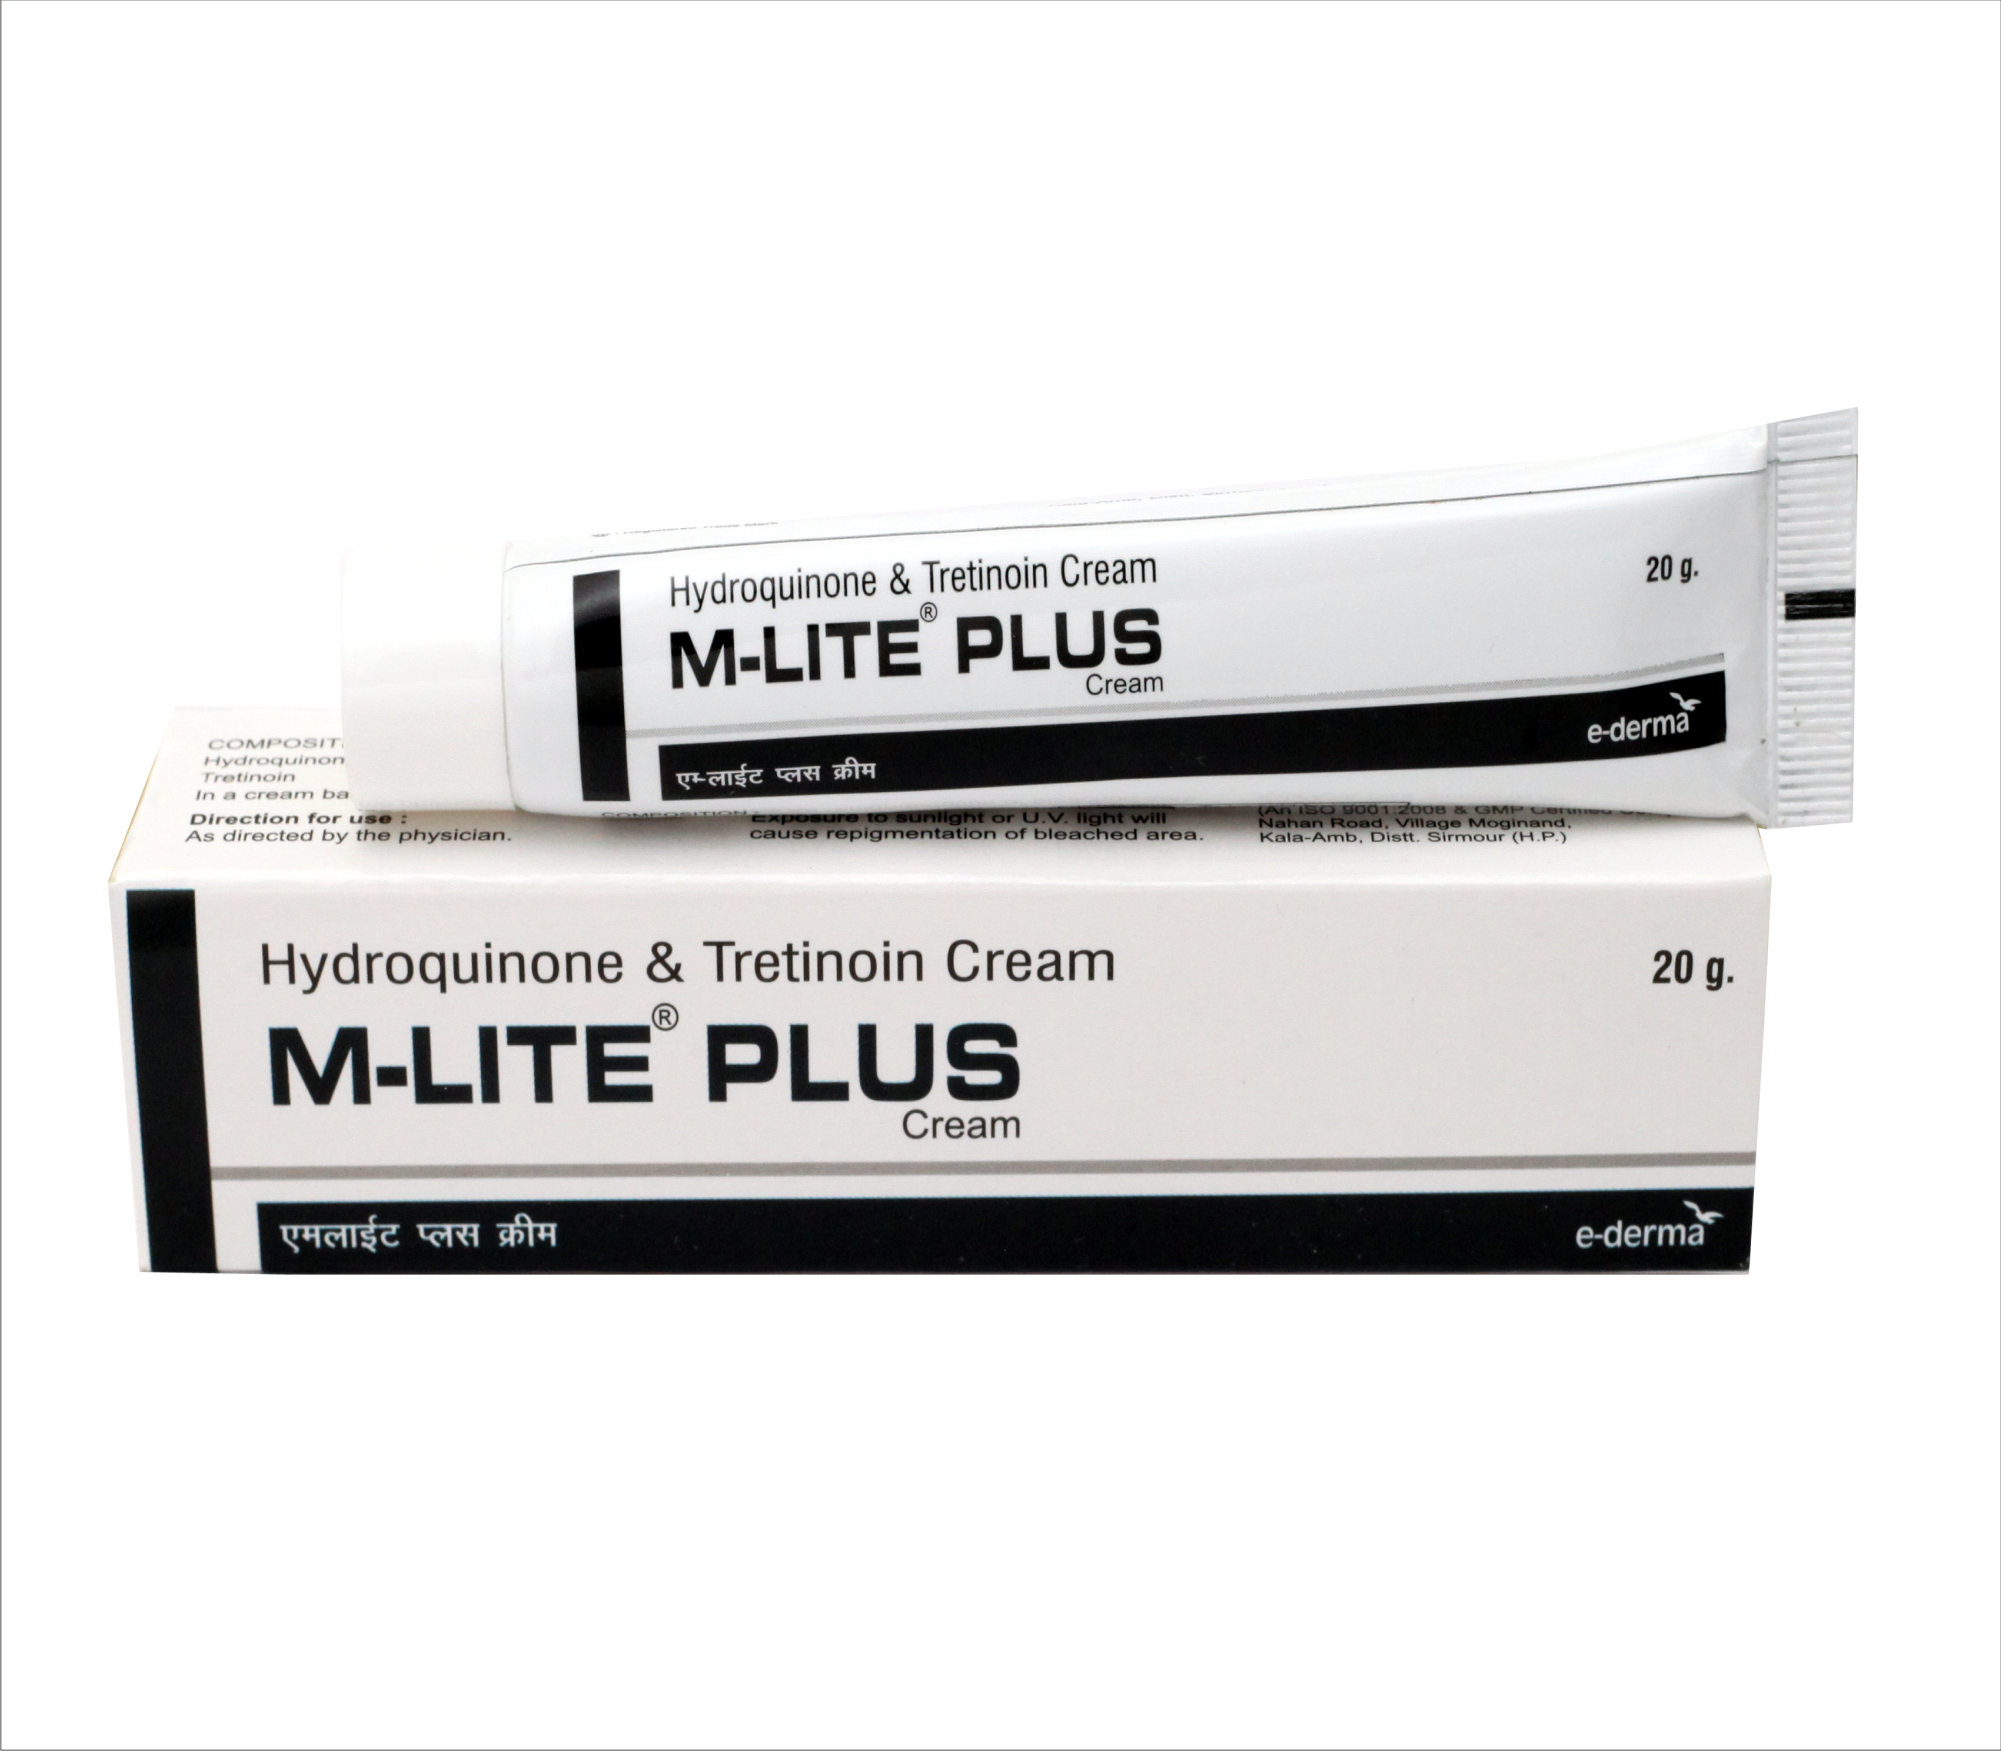 HYDROQUINONE AND TRETINOIN CREAM